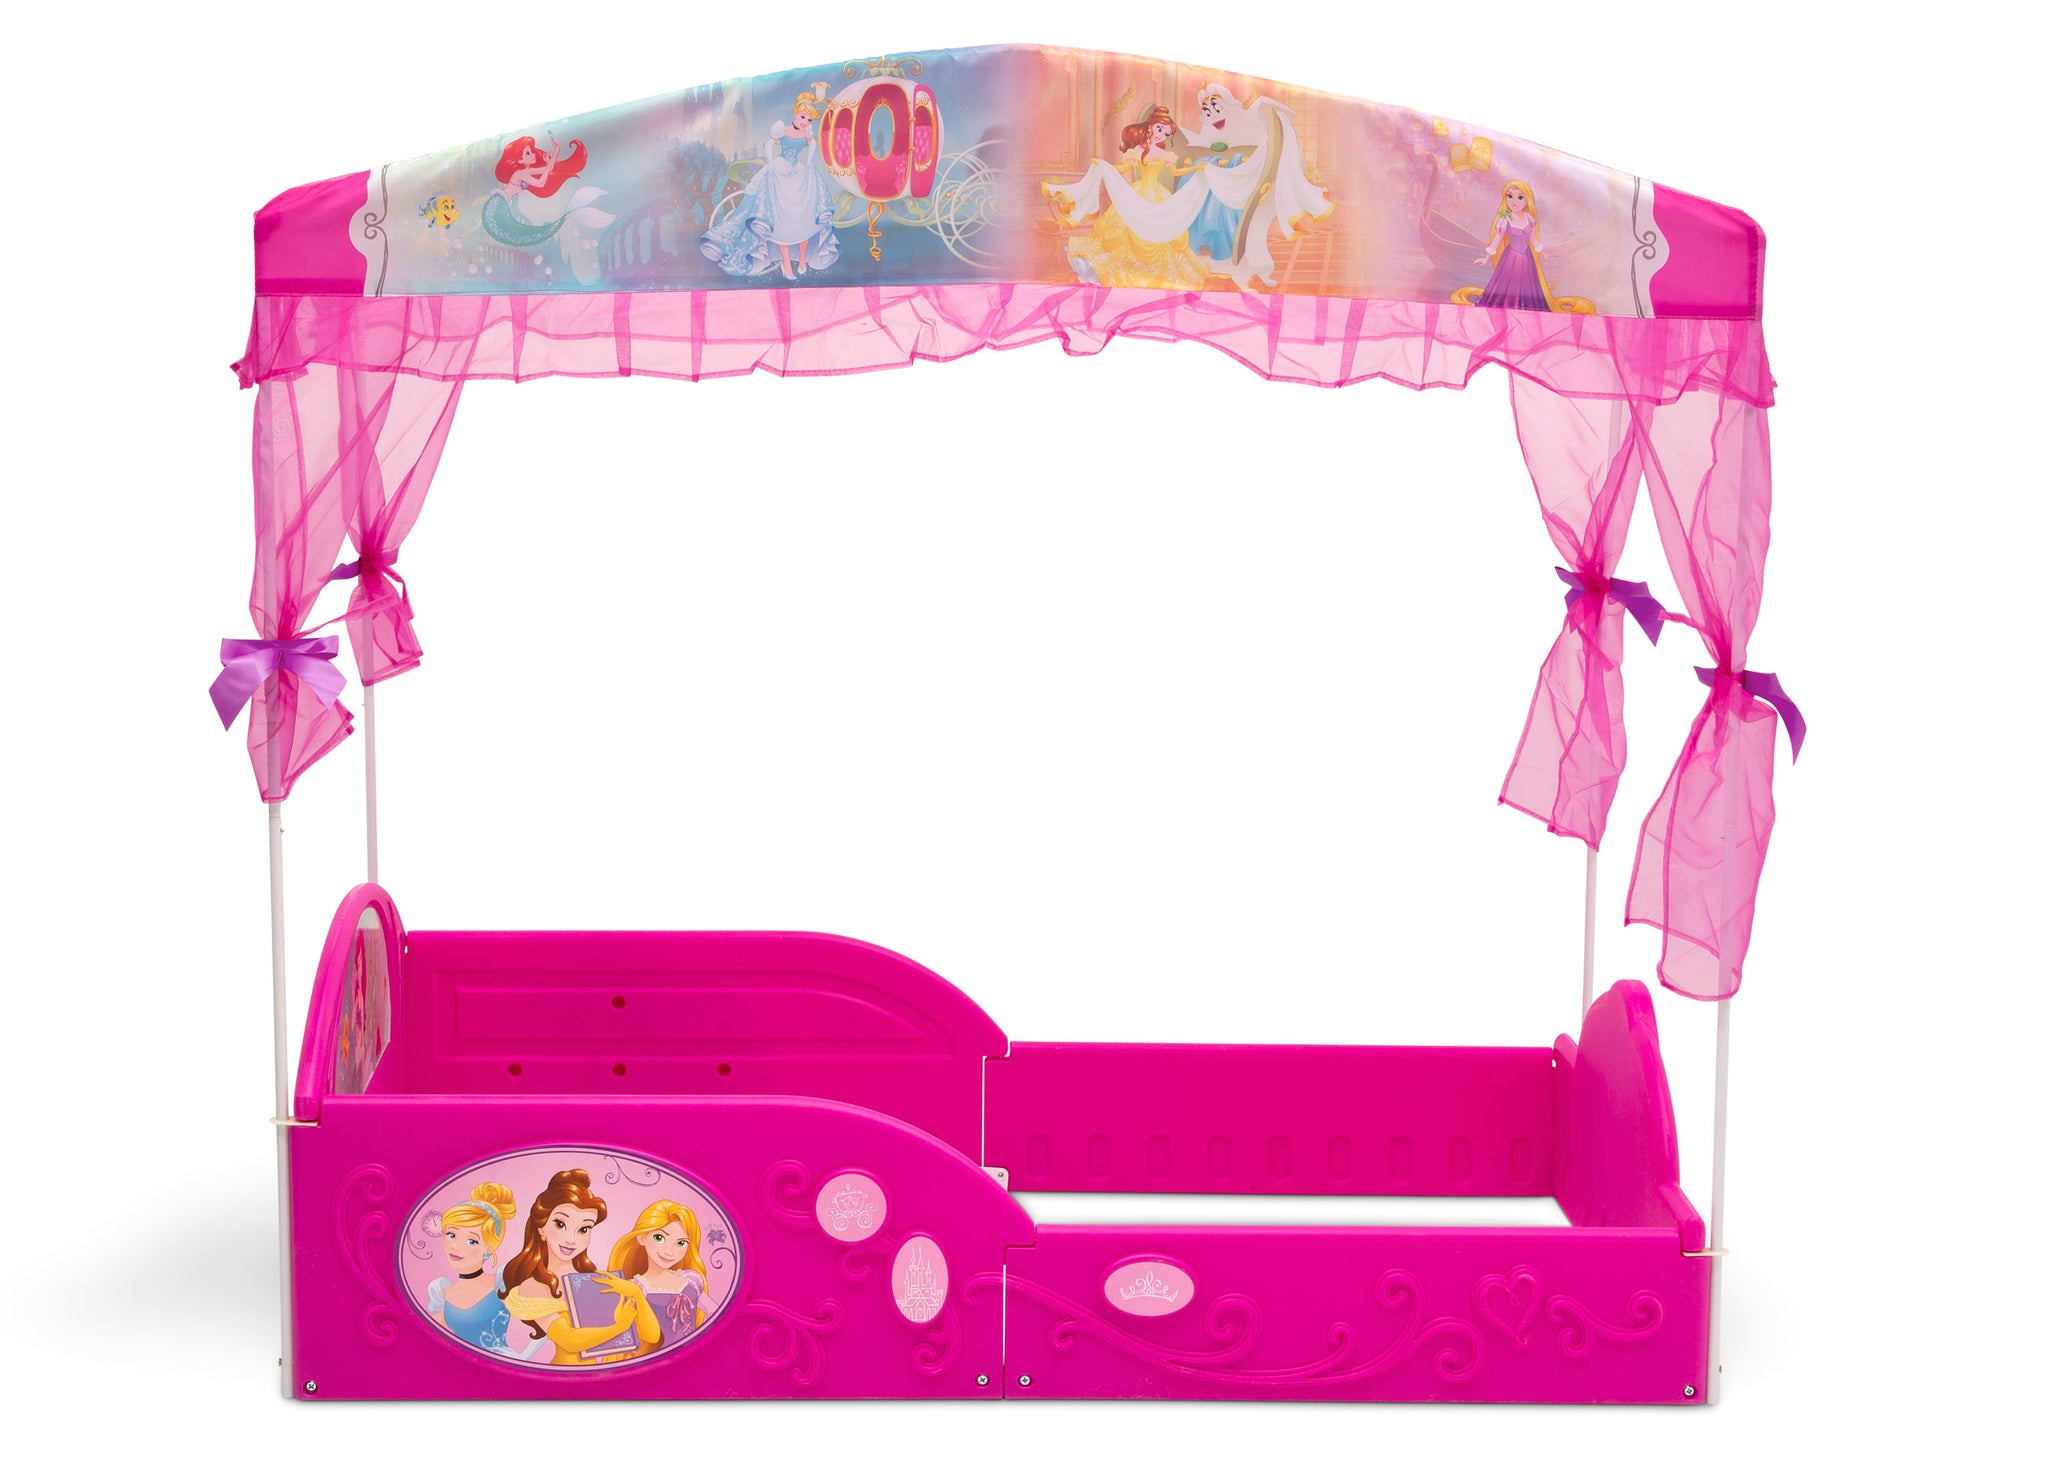 Disney Princess Plastic Sleep and Play Toddler Bed with ...